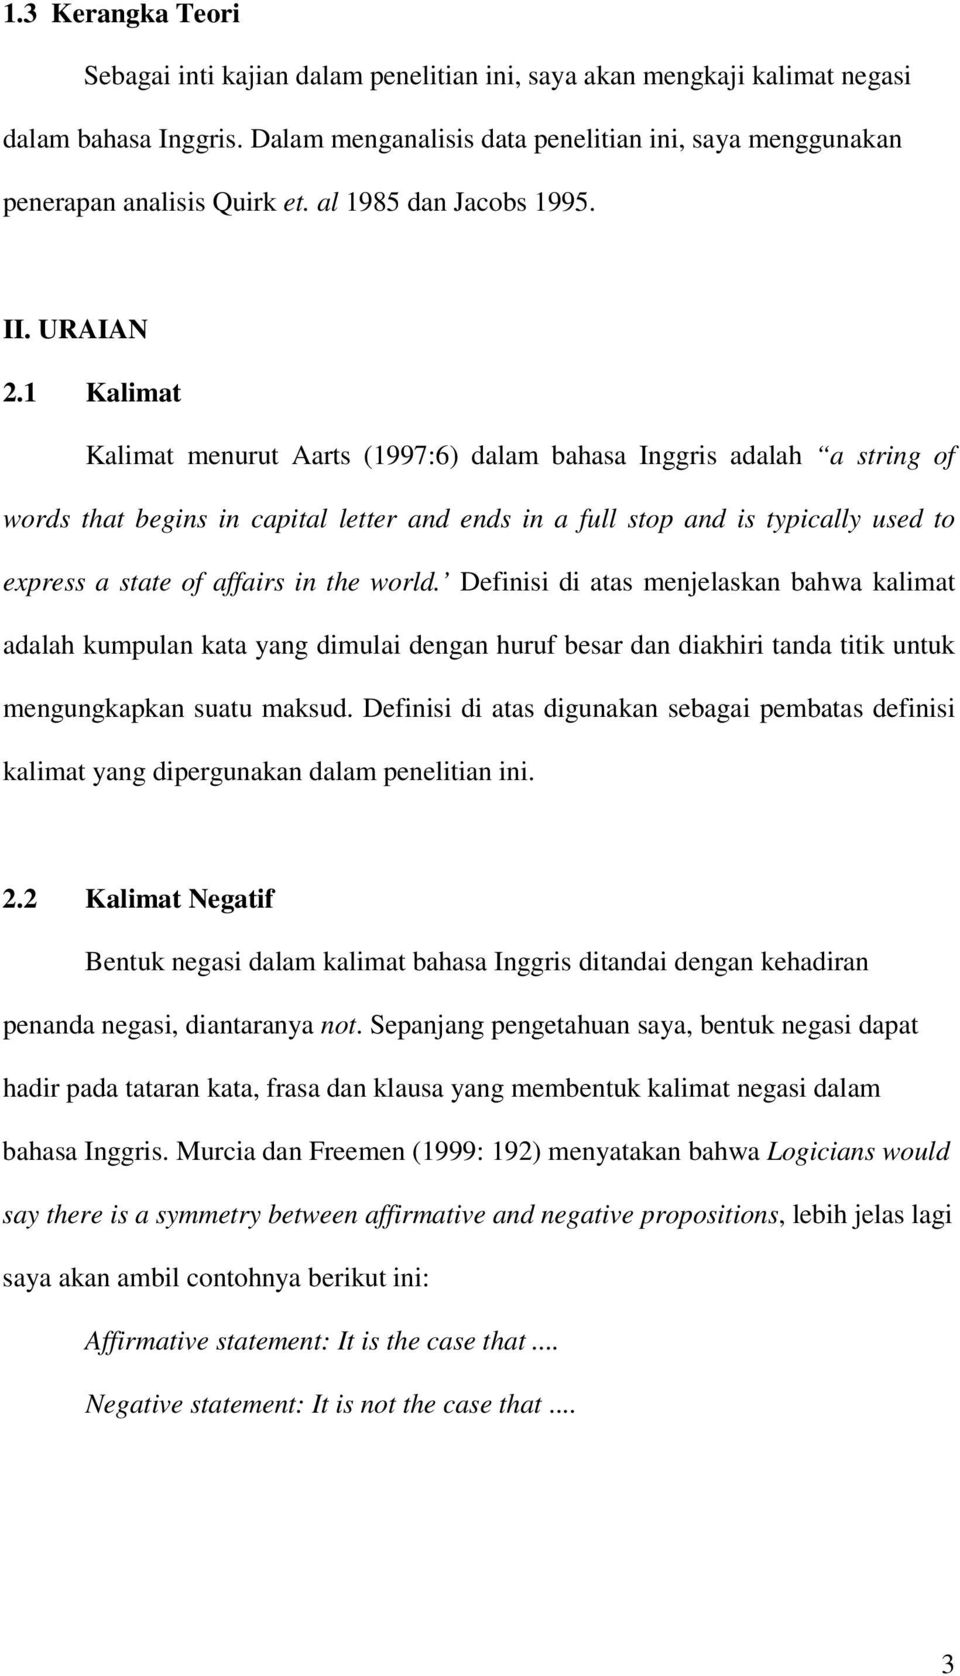 1 Kalimat Kalimat menurut Aarts (1997:6) dalam bahasa Inggris adalah a string of words that begins in capital letter and ends in a full stop and is typically used to express a state of affairs in the